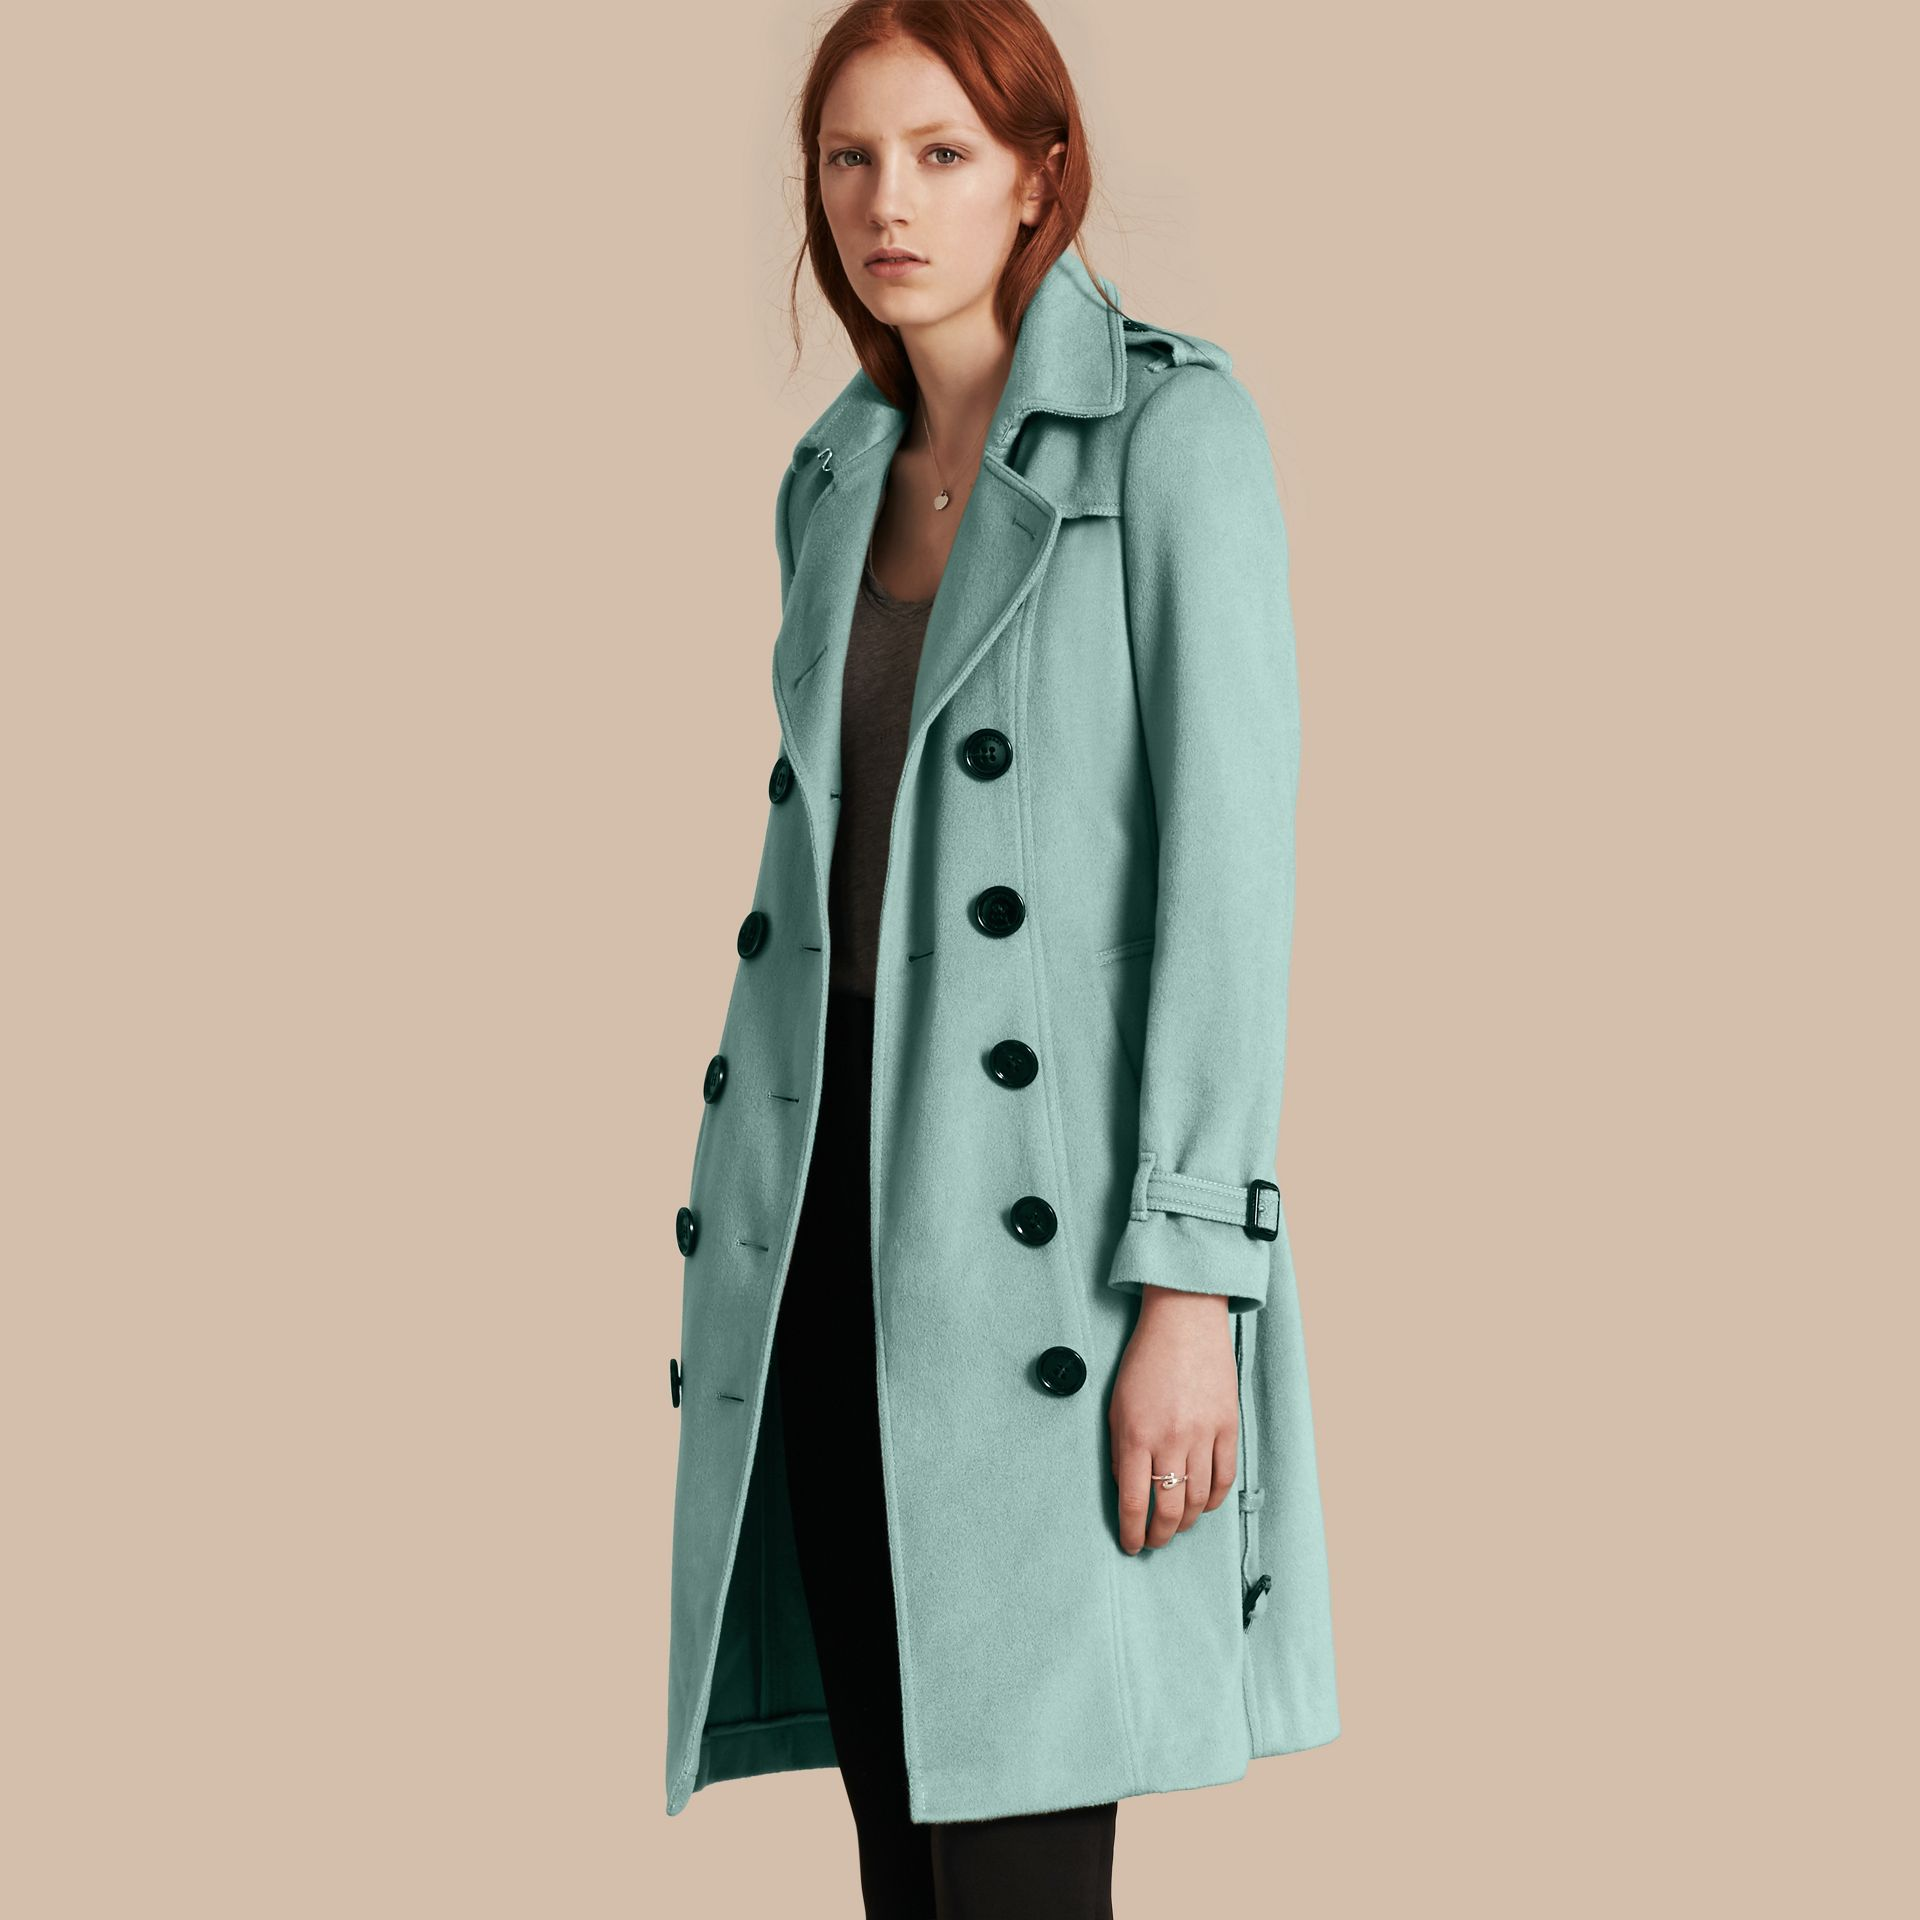 Dusty mint Sandringham Fit Cashmere Trench Coat Dusty Mint - gallery image 1